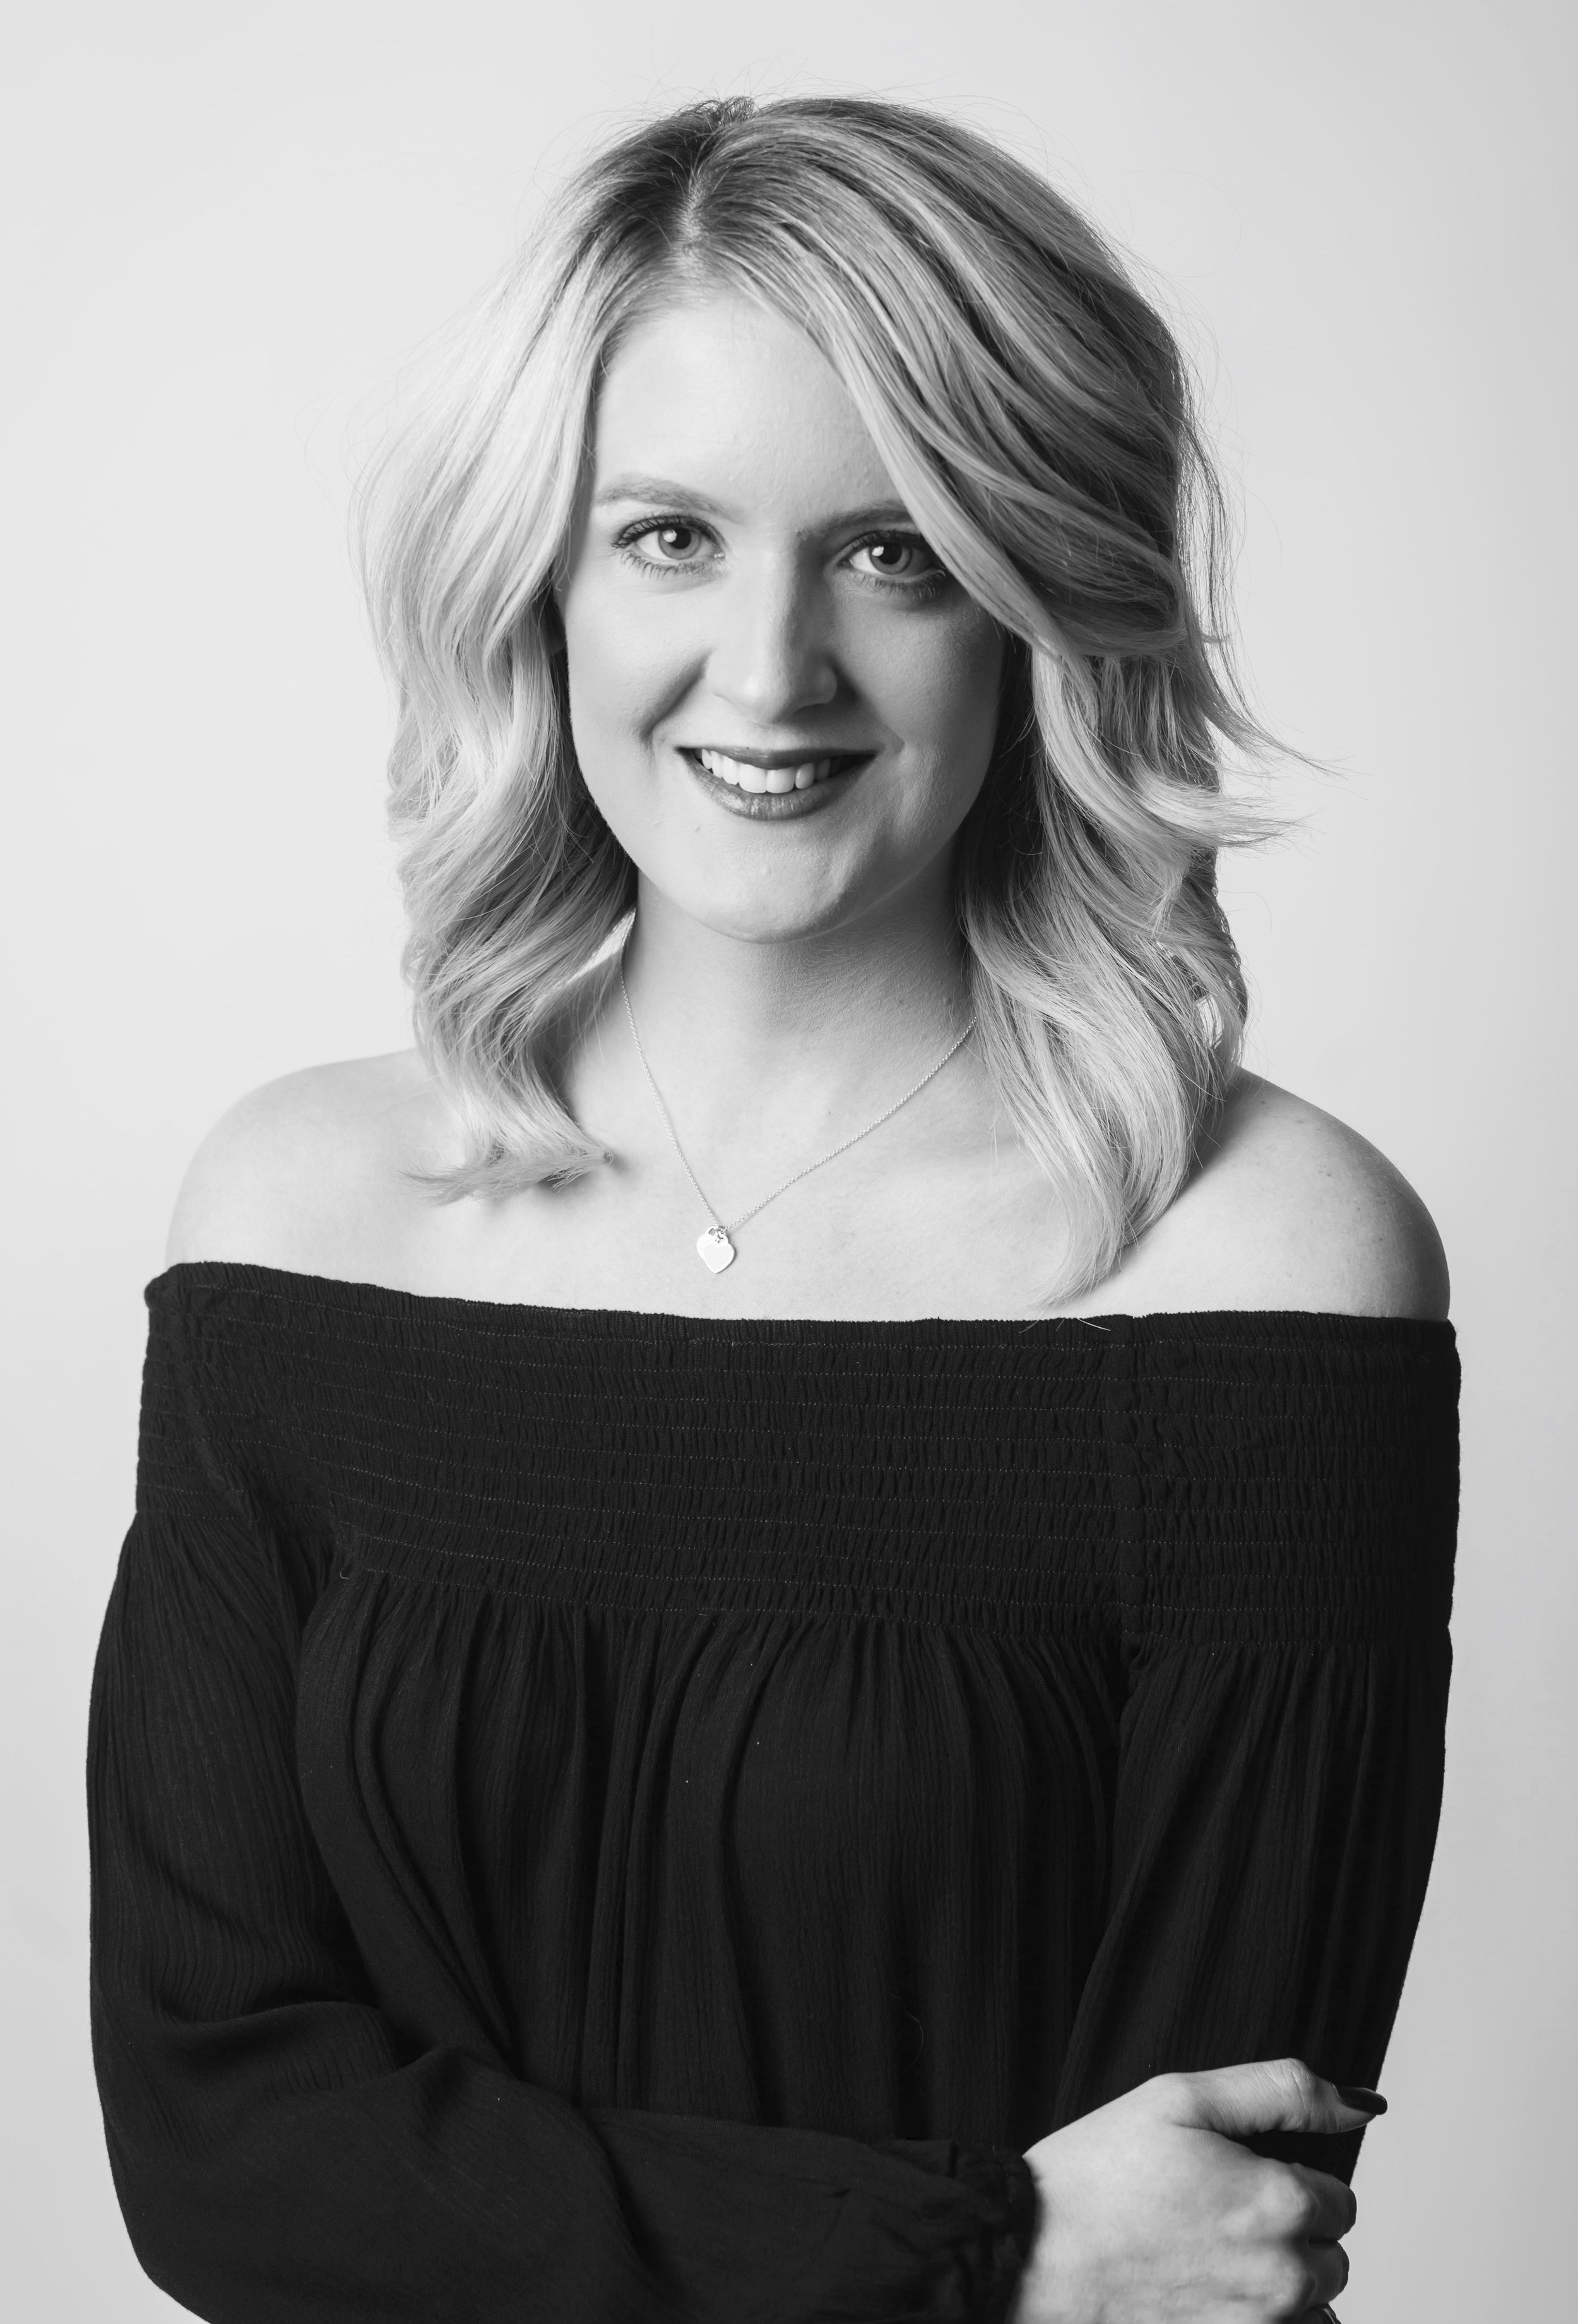 Morgan Vlasman, licensed aesthetician and makeup artist at Okoboji Skin Care